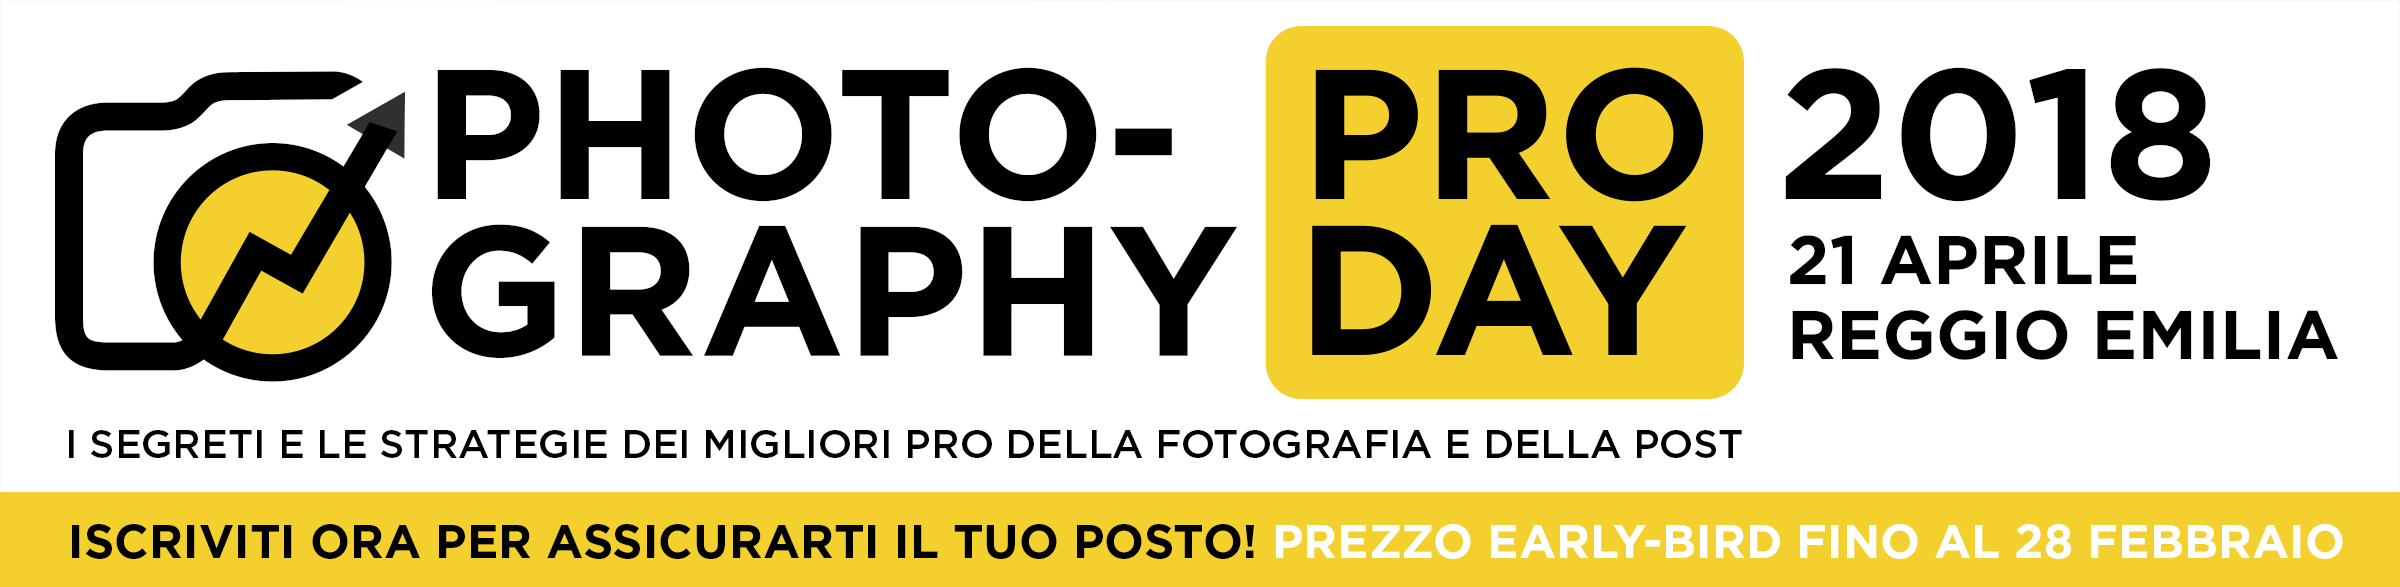 Photography PRO Day 2018 - FotografiaProfessionale